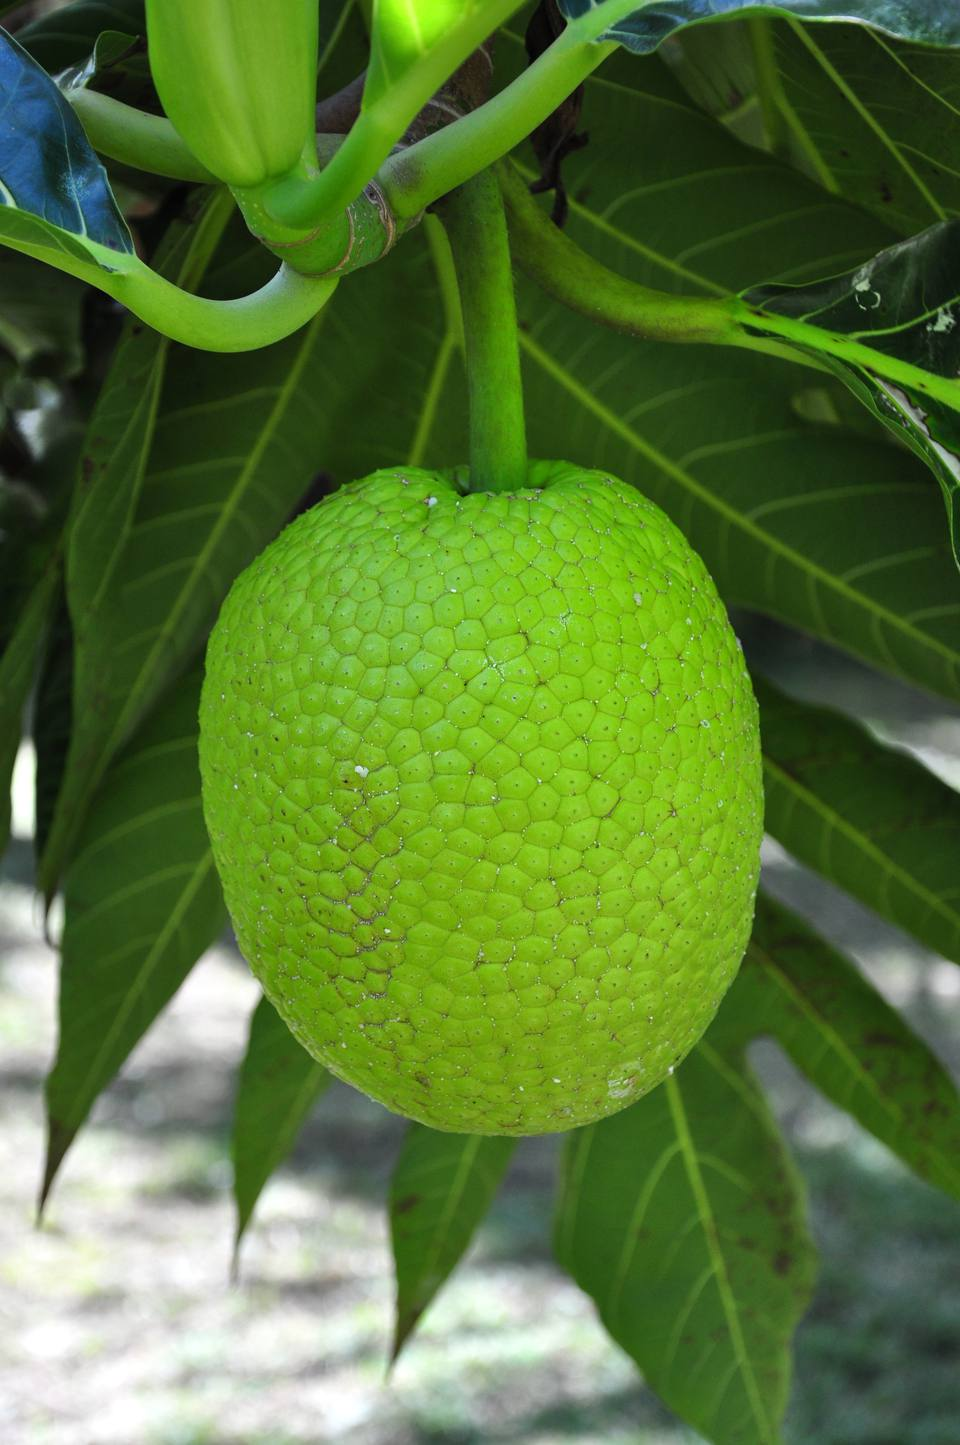 A New Breadfruit Punch for a Healthy Juice or Smoothie